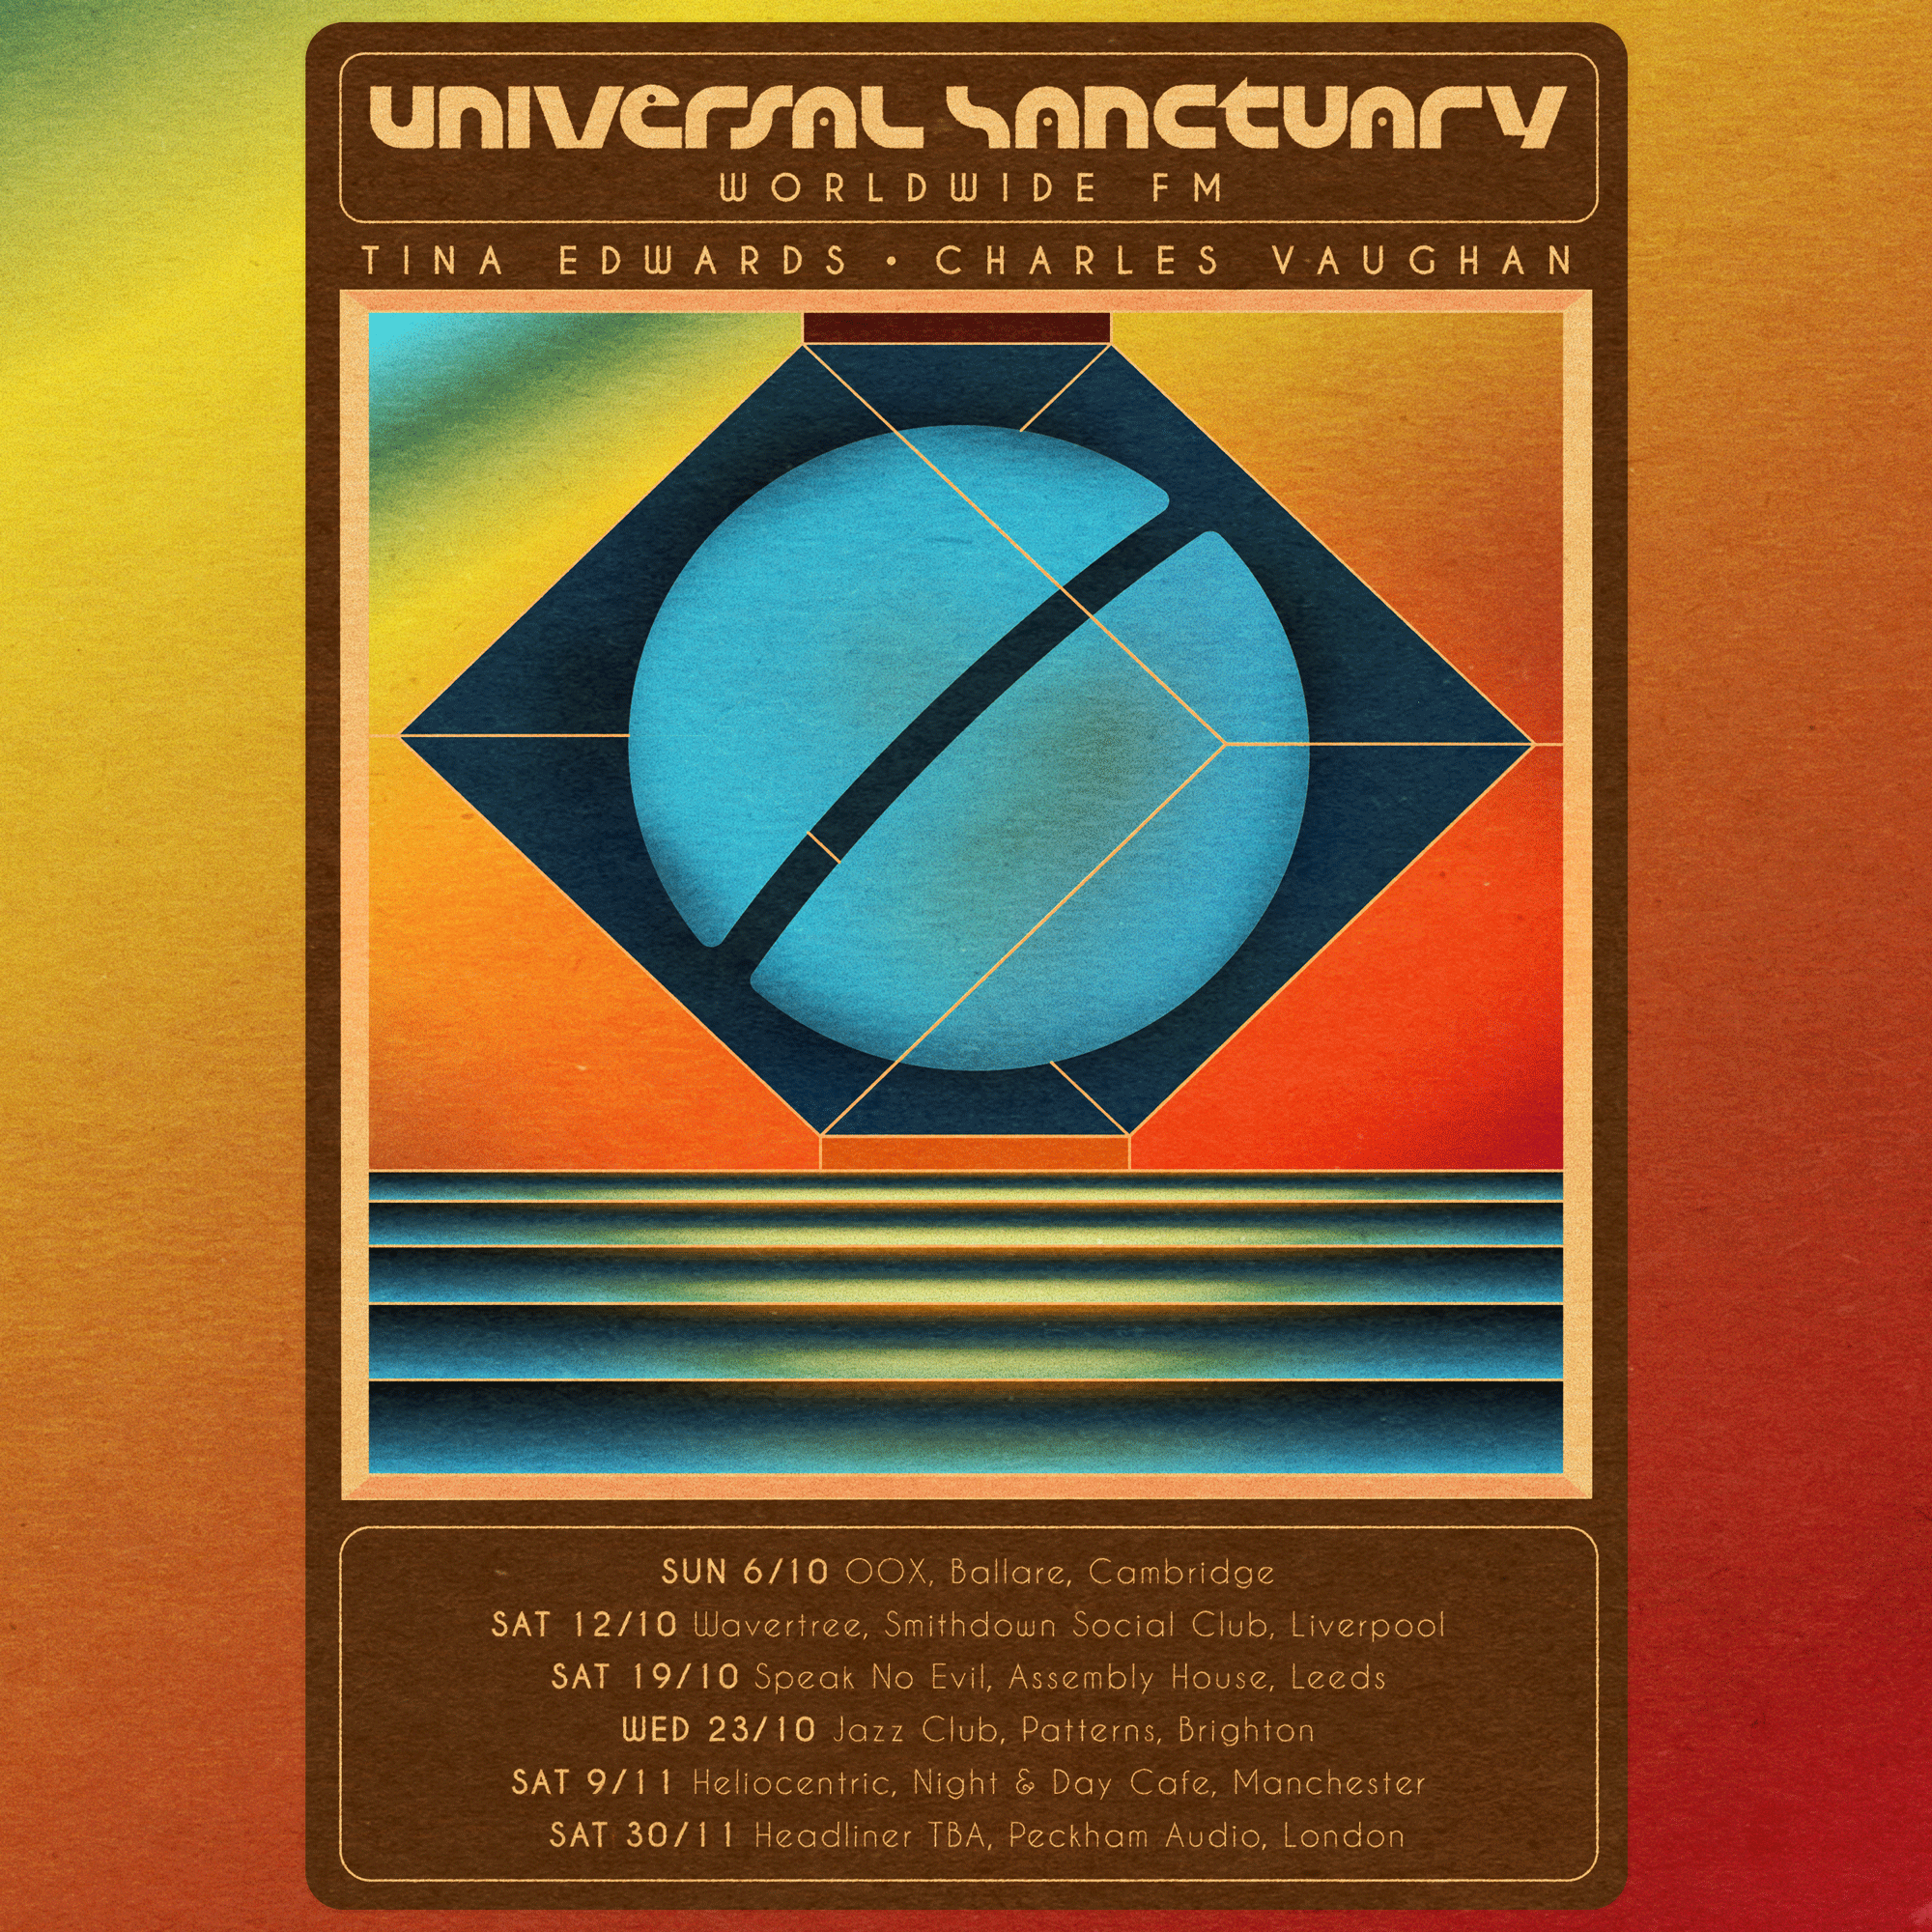 universal-sanctuary-worldwide-fm-poster-UPDATE